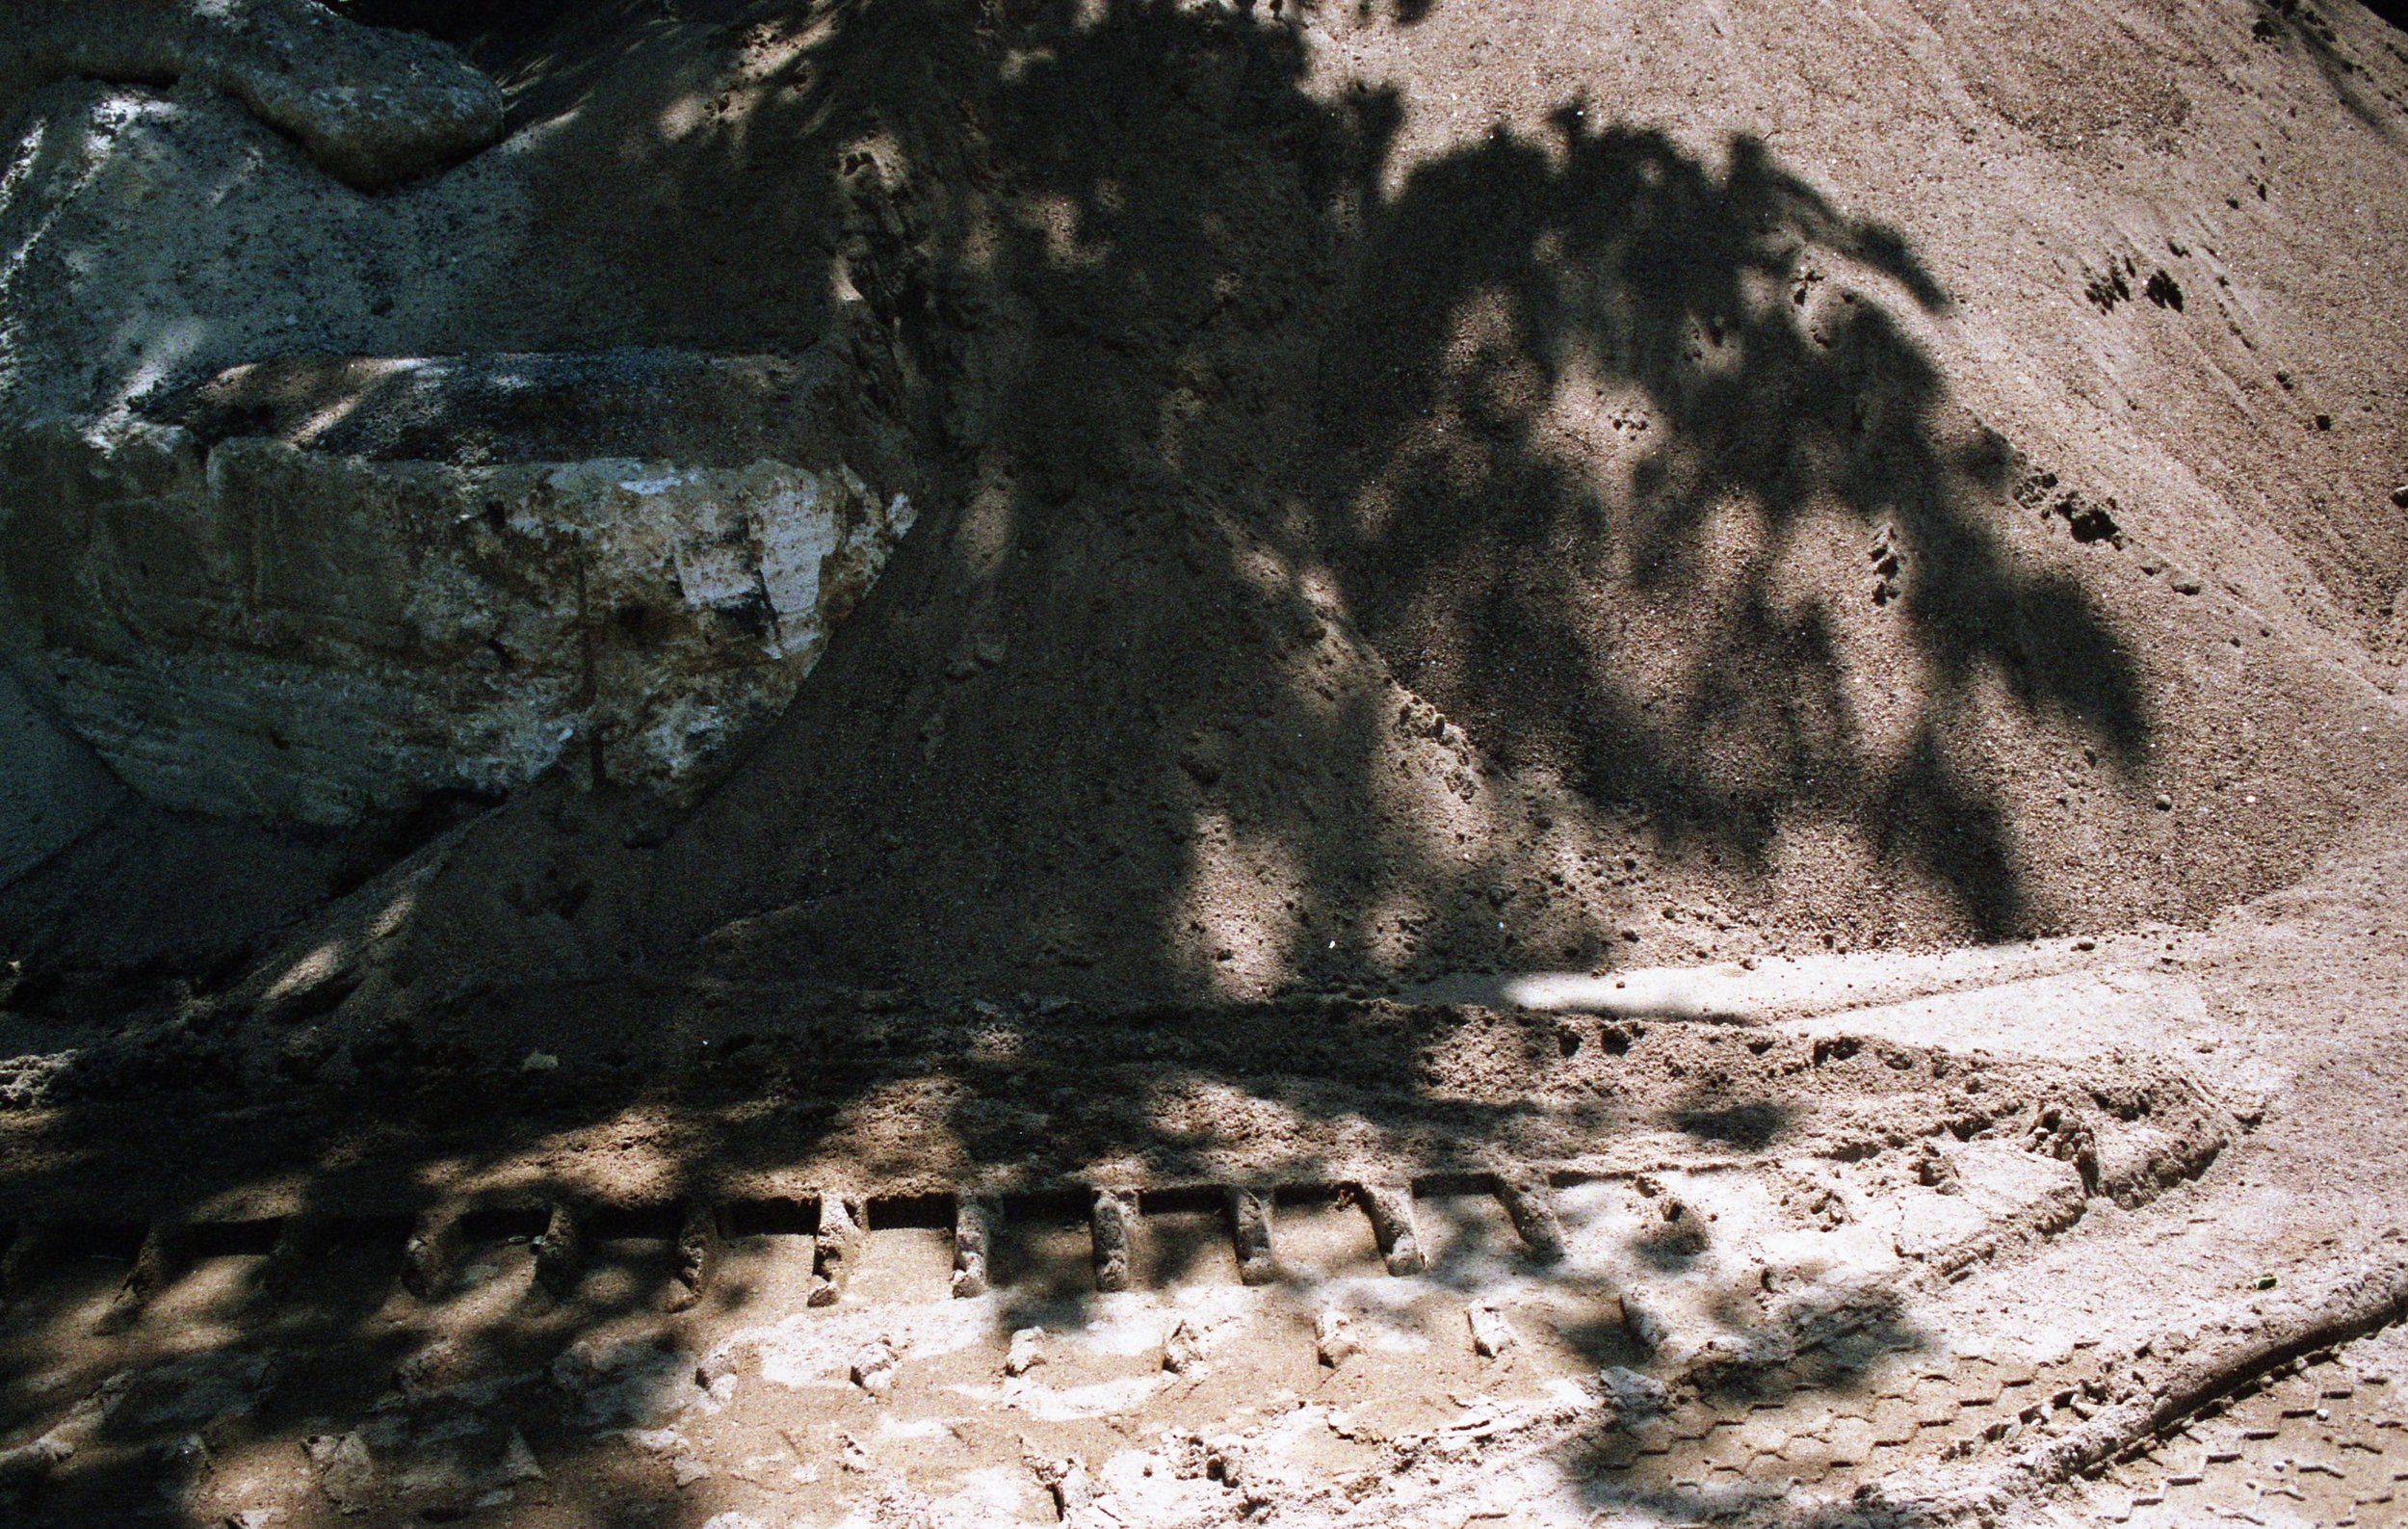 35mm color photograph, 2015